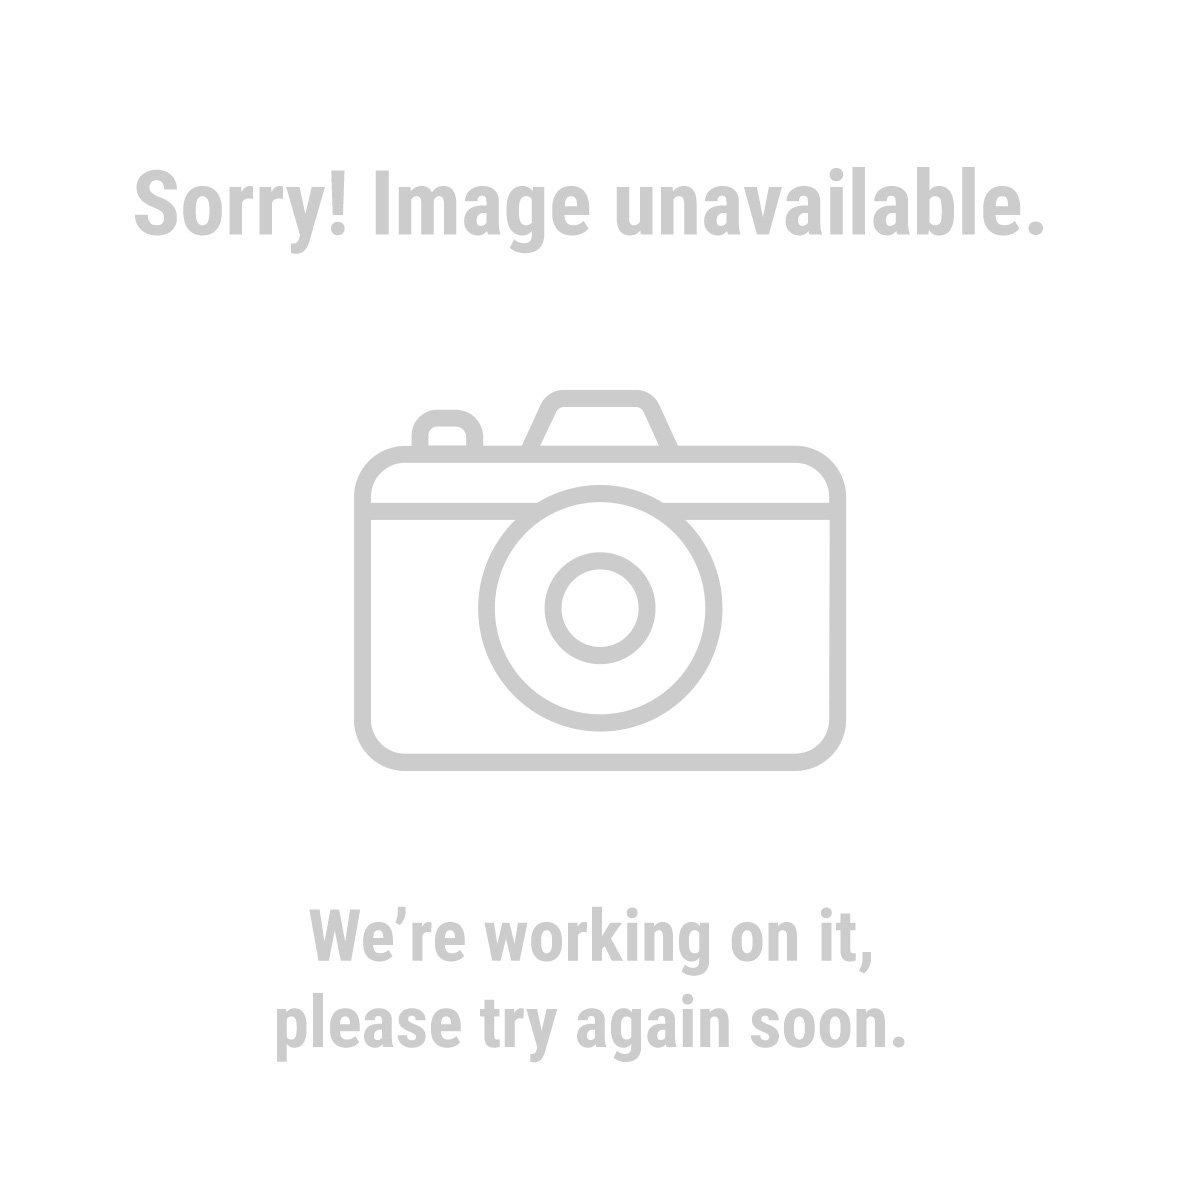 Storehouse 60255 Assorted Cable Ties 1000 Pc